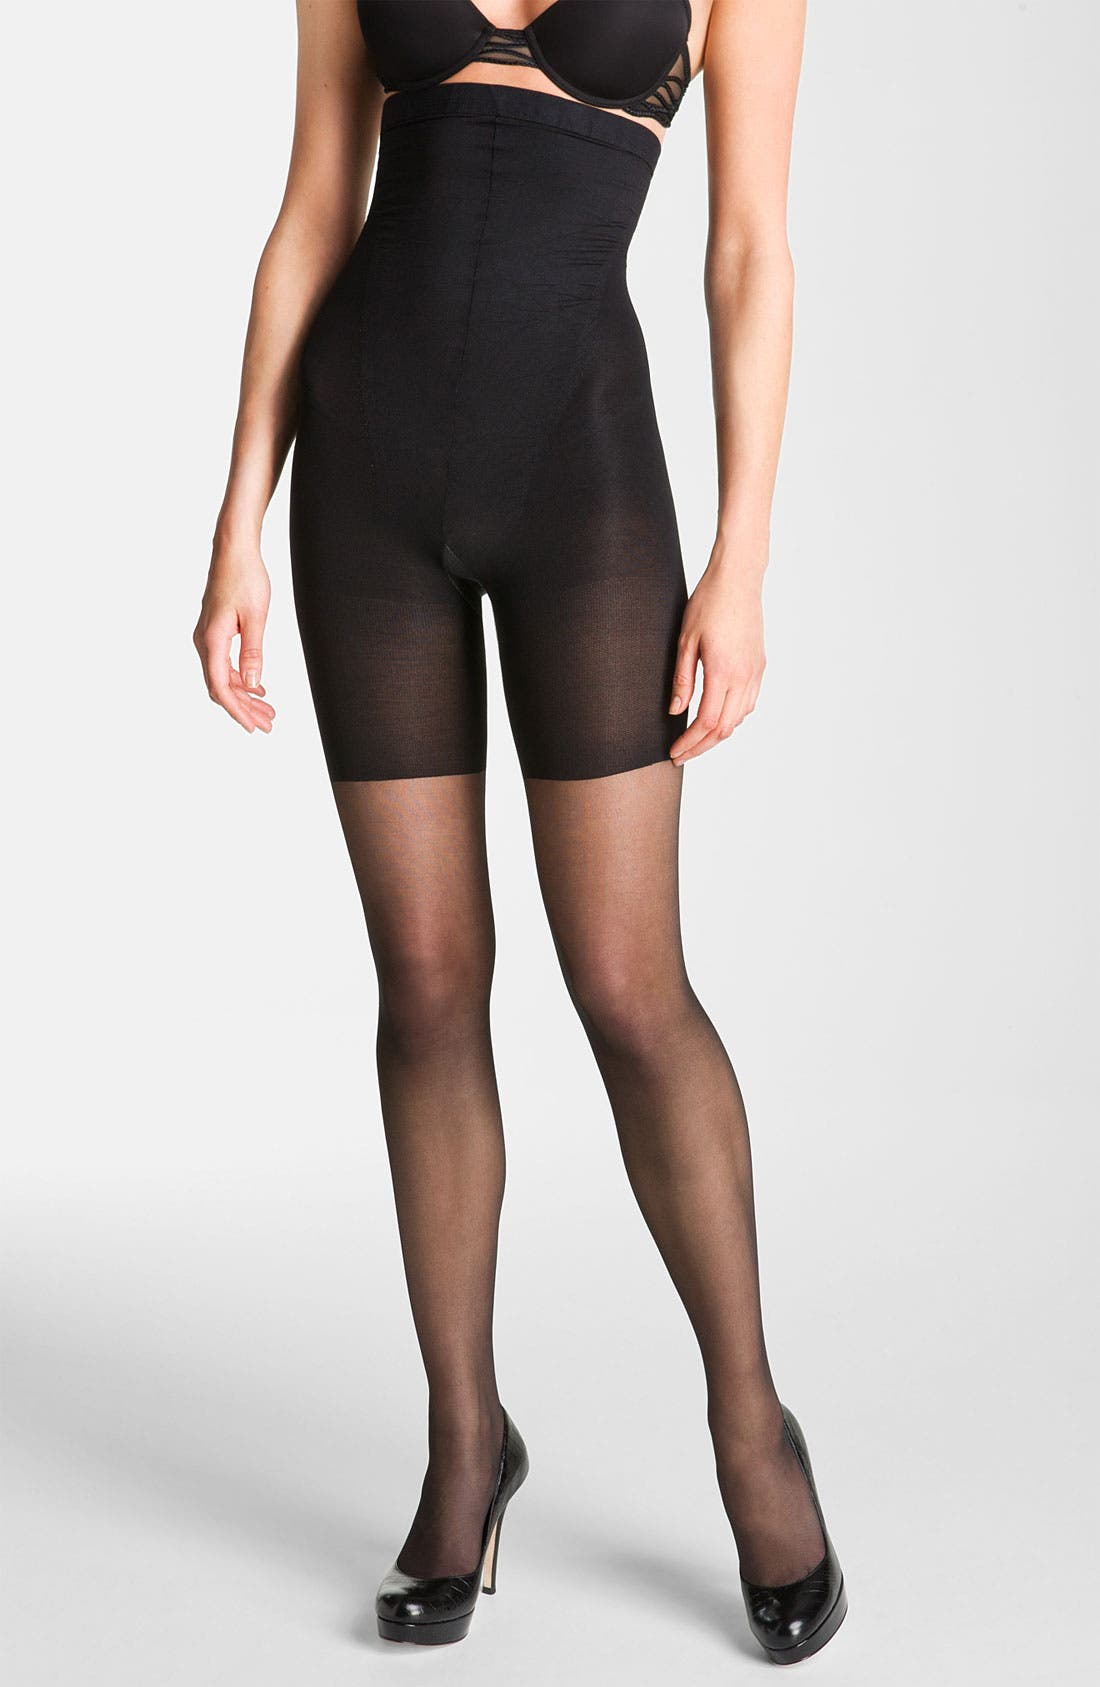 Main Image - SPANX® 'Original' High Waisted Shaping Sheers (Regular & Plus Size)